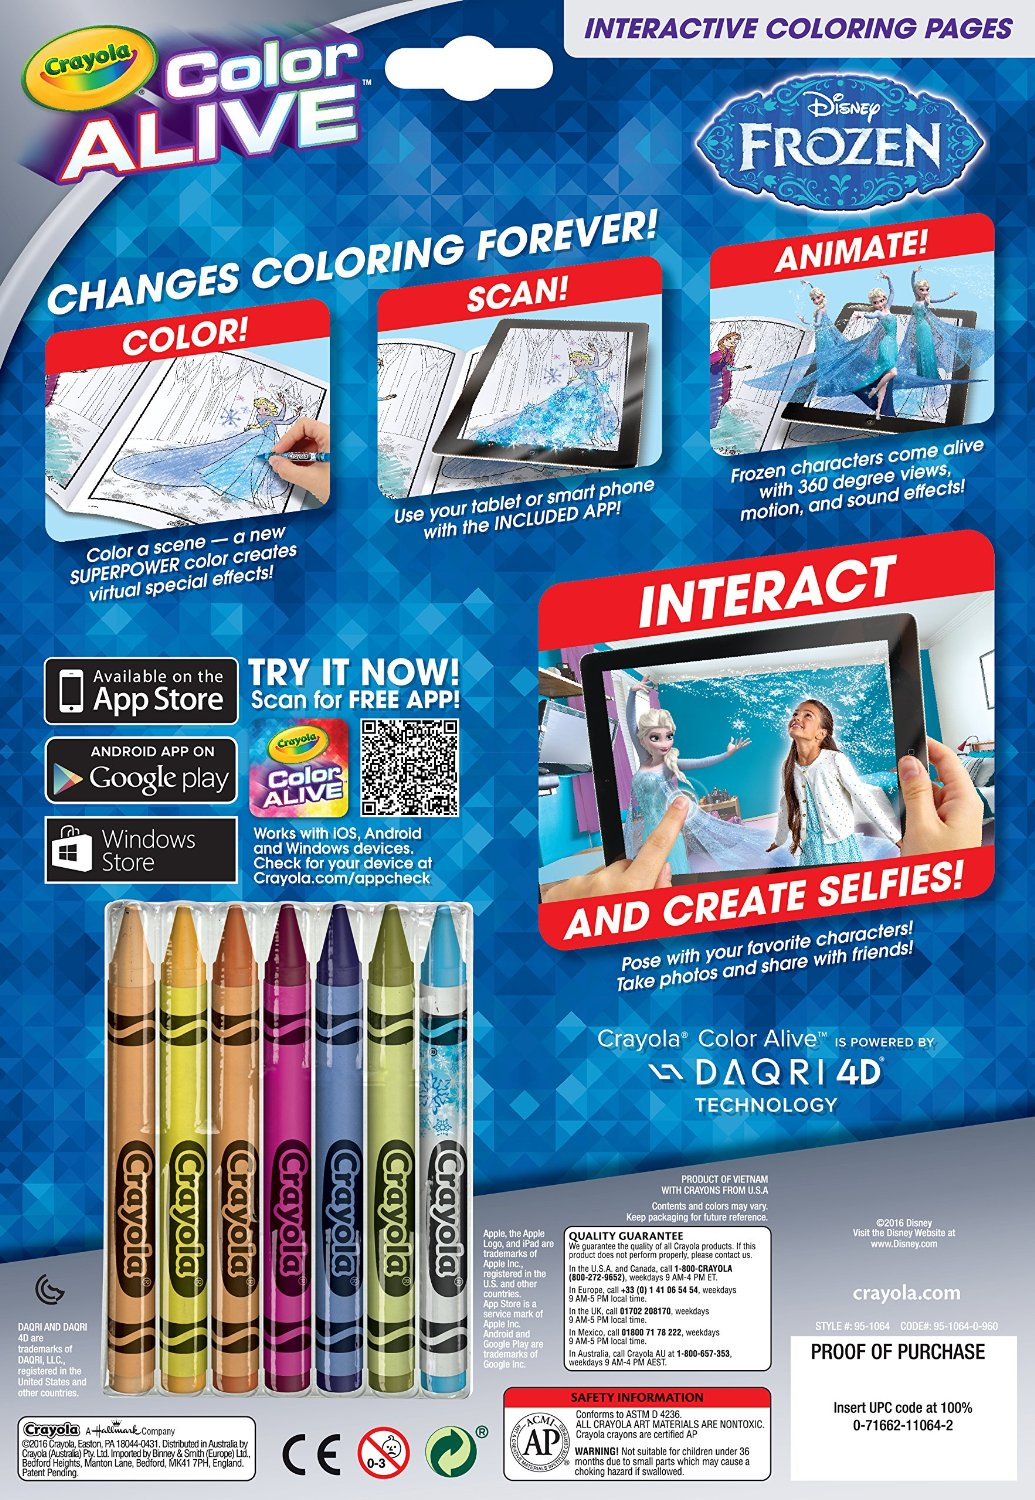 talking about fun both these two products will have your kids imagination flooring with creativity and if your children are star wars lovers like mine the